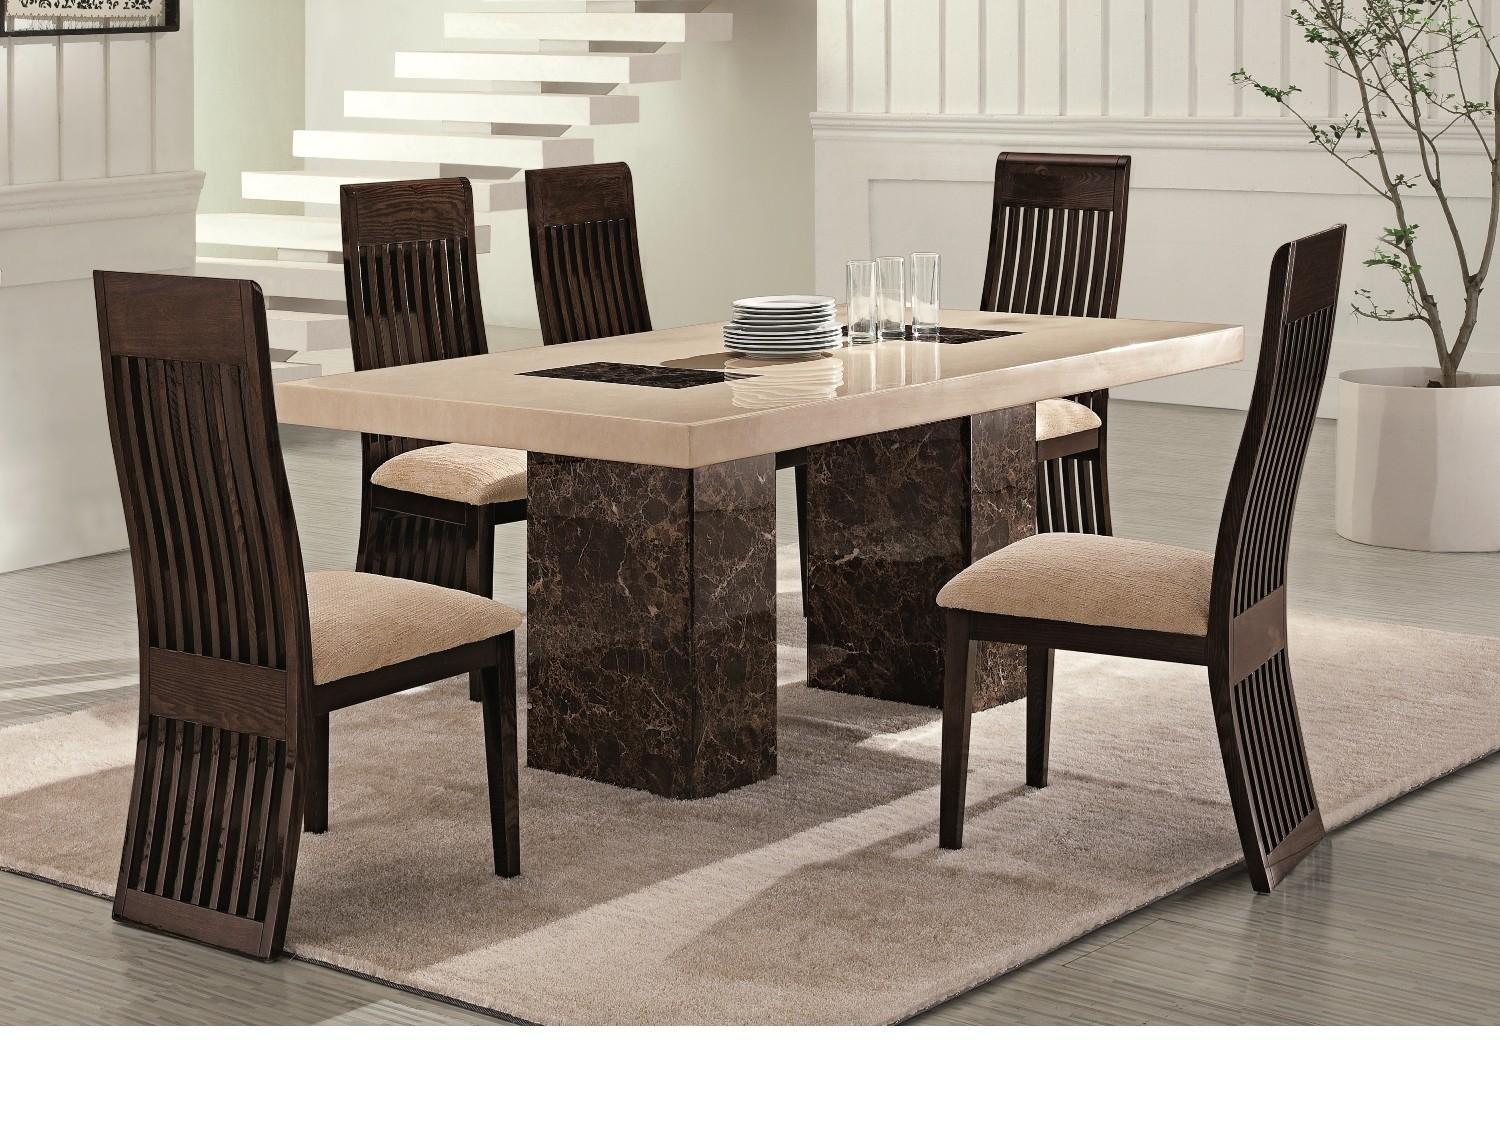 Unique Dining Tables Modern Retro Set Furniture